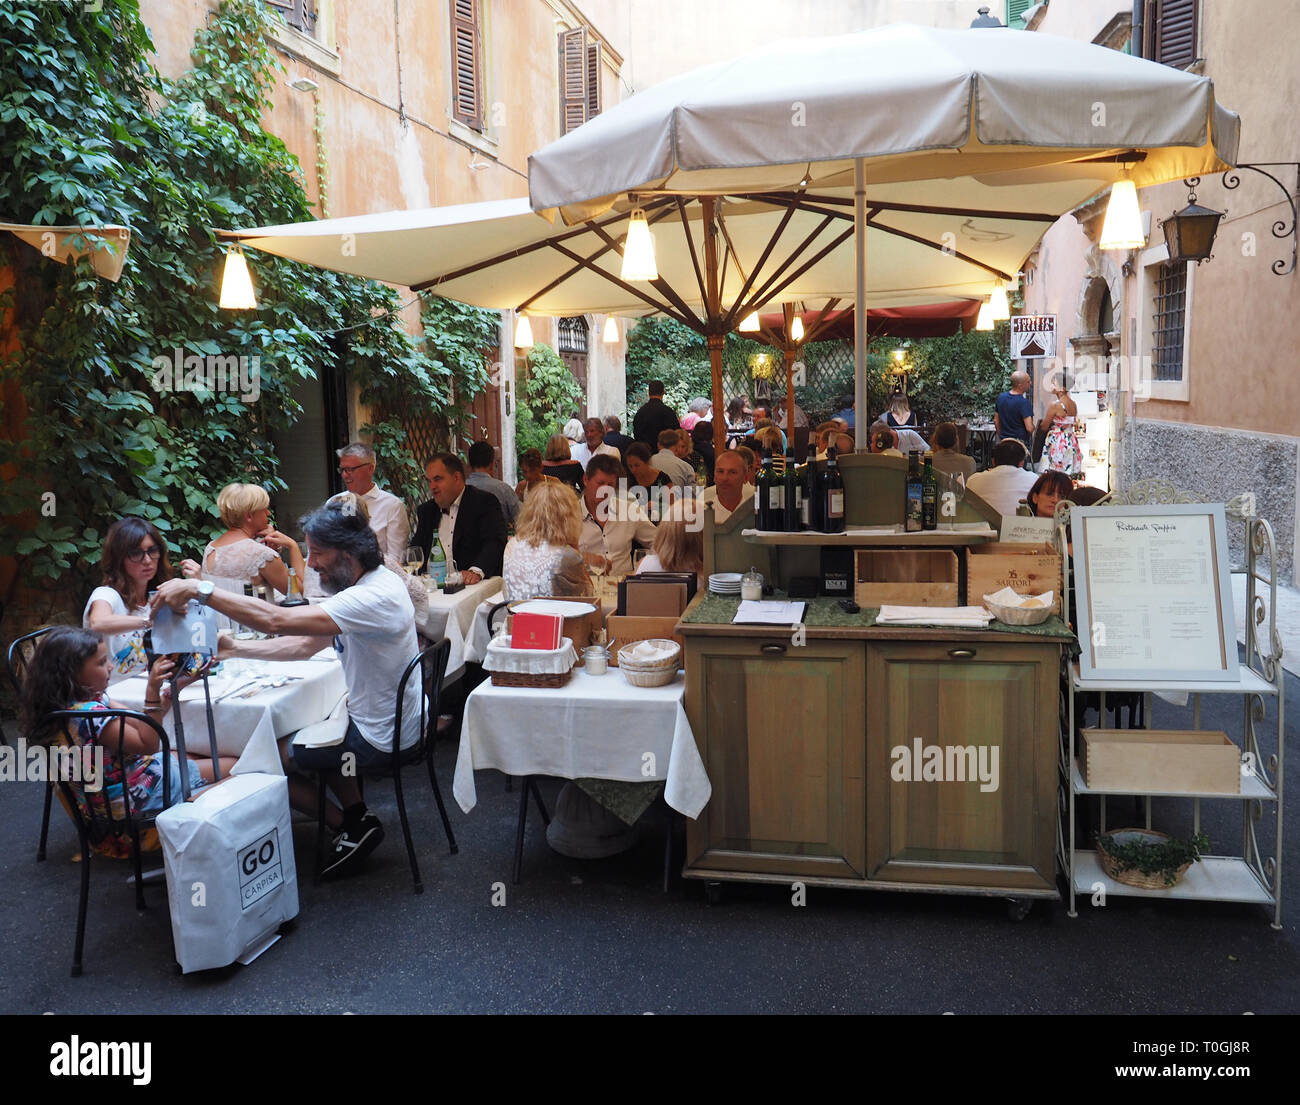 Europe, Italy, Veneto, Verona, typical restaurant in the historic center - Stock Image